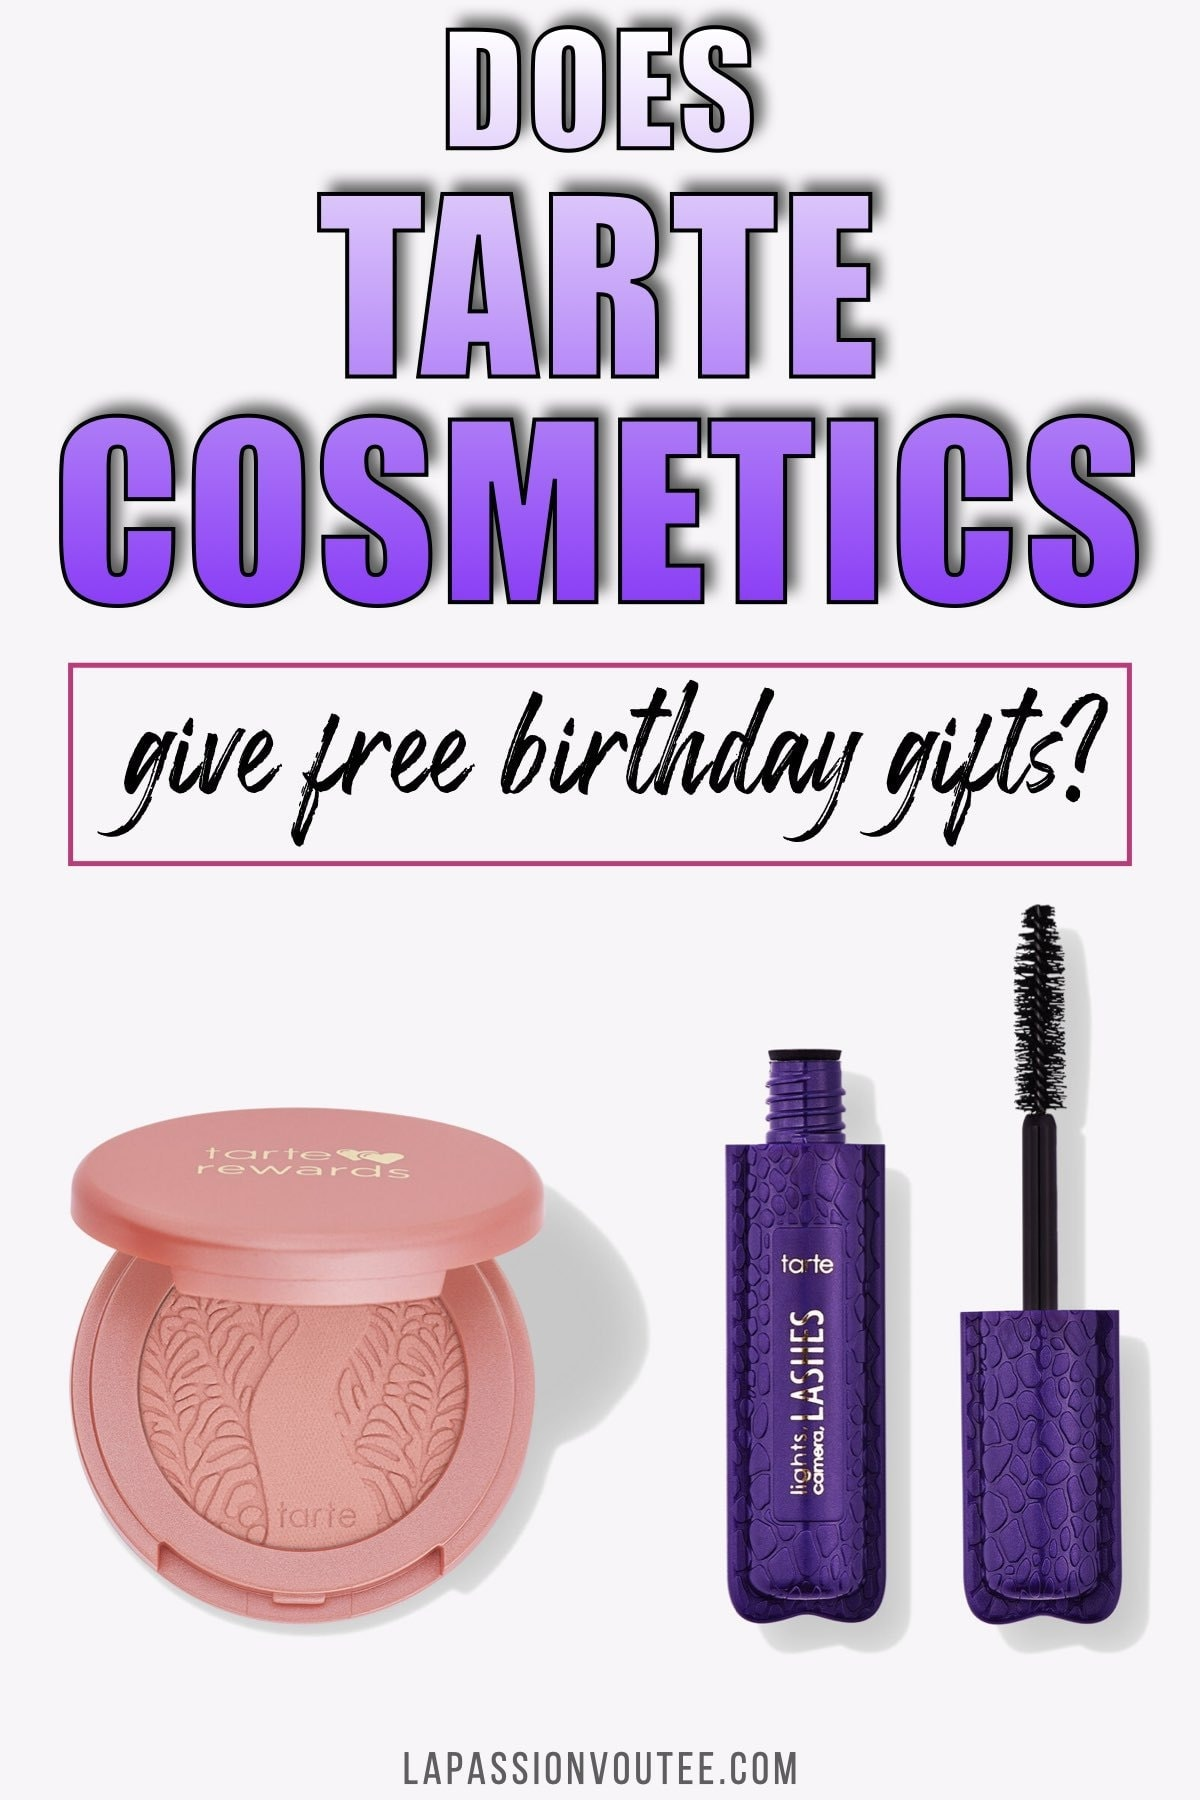 Does Tarte Cosmetics Give Free Birthday Gifts